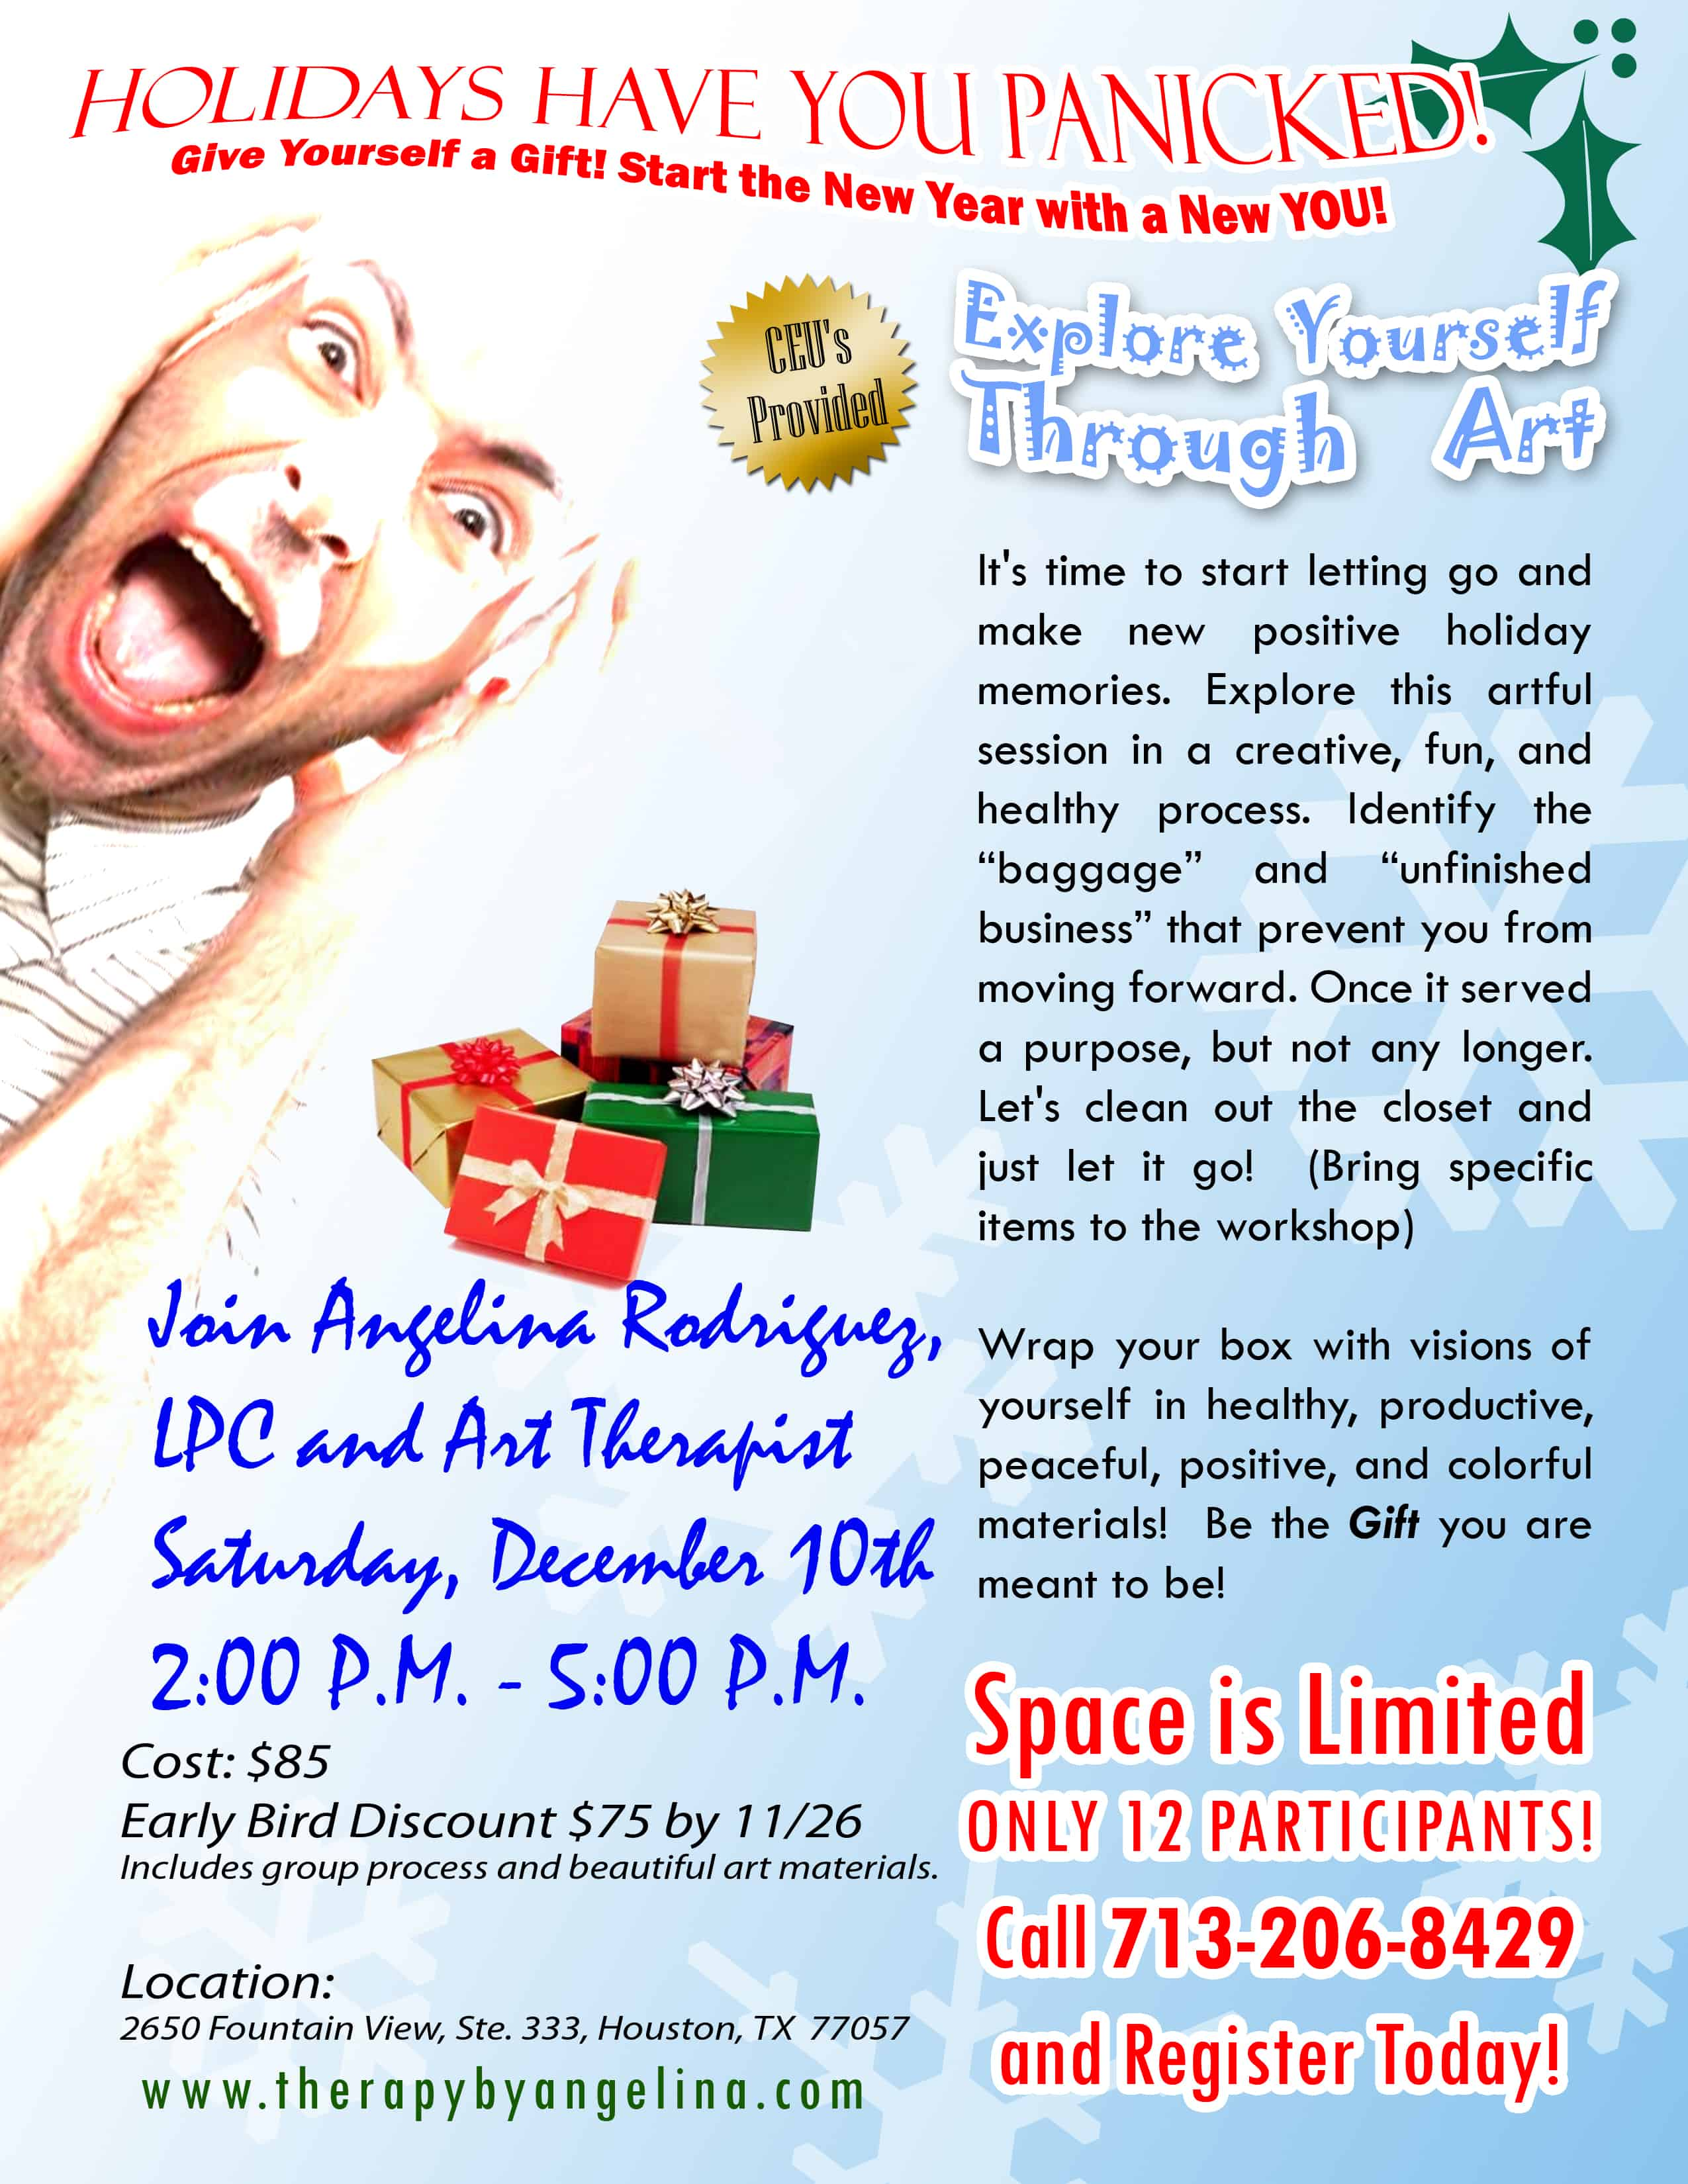 Holiday Panic! — Psychotherapy By Angelina